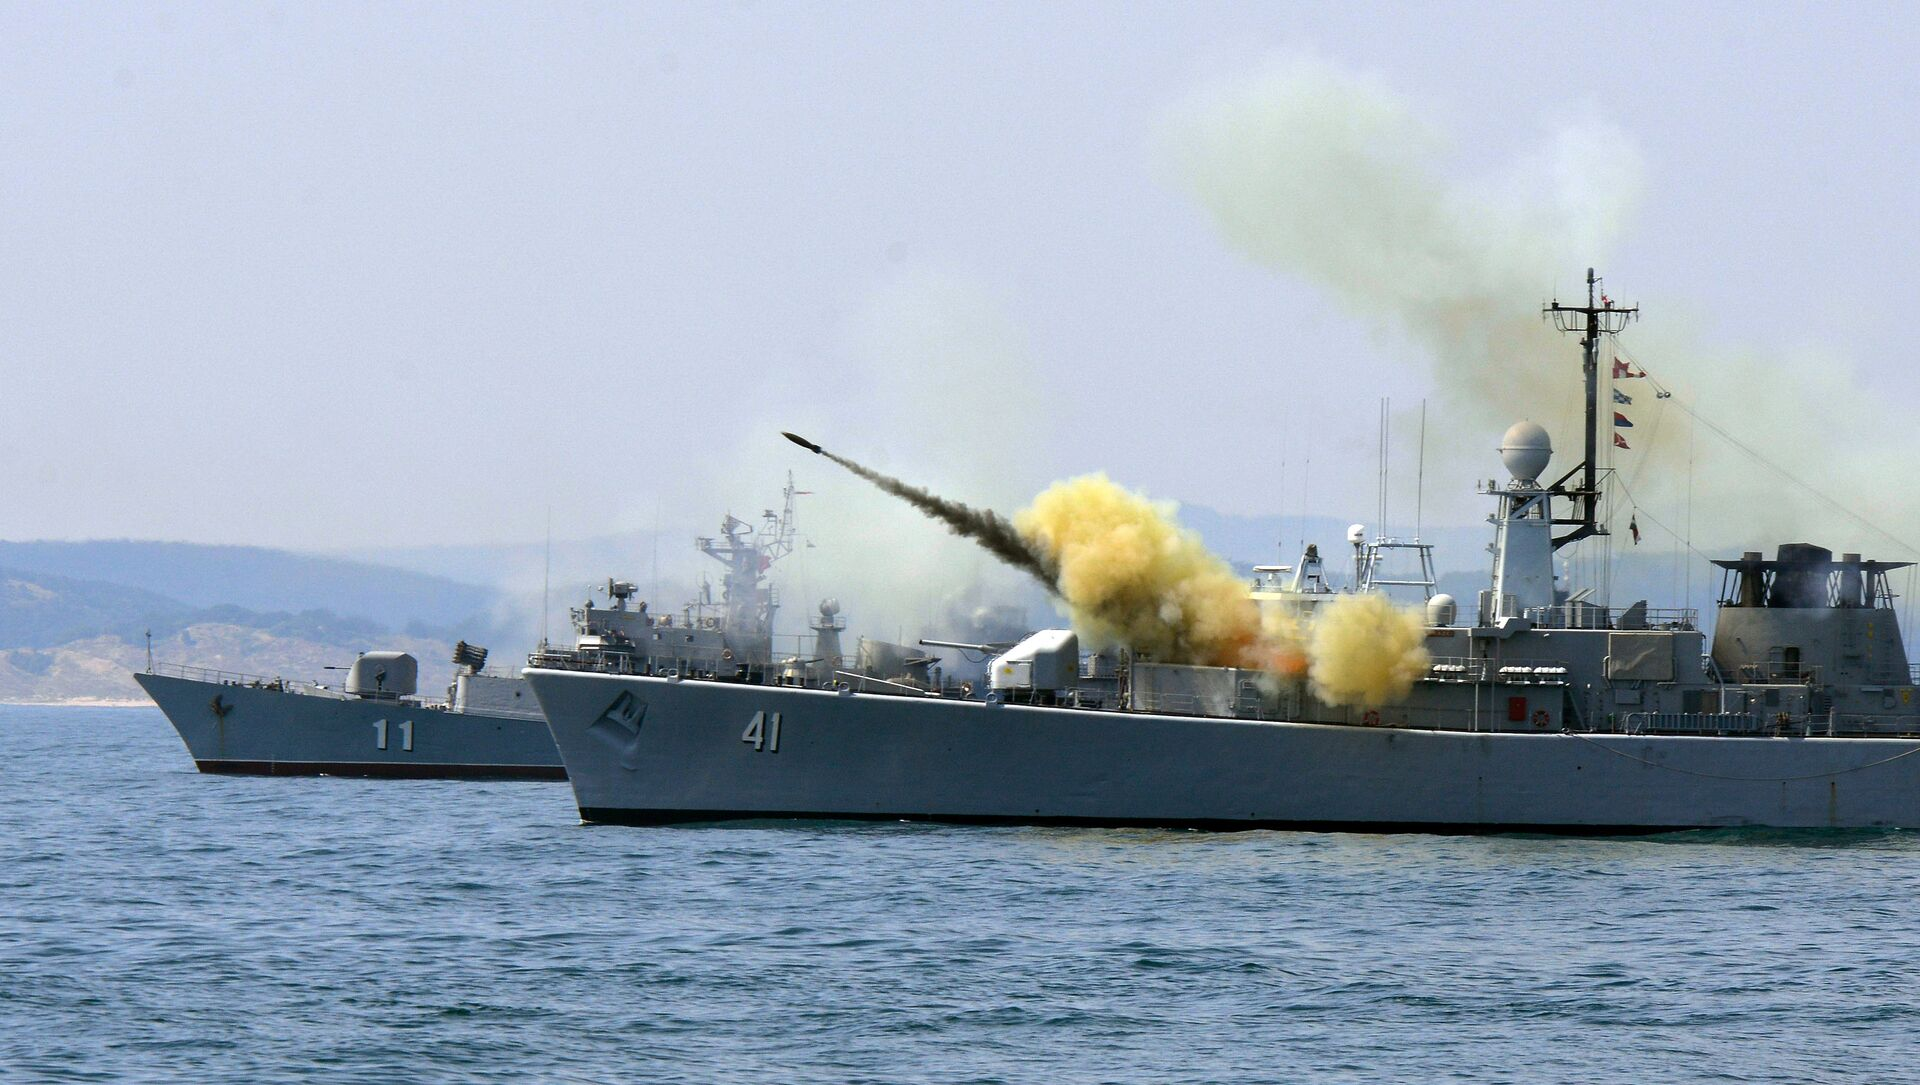 An anti-submarine rocket blasts off a rocket launcher from the Bulgarian navy frigate Drazki during the BREEZE 2014 military drill in the Black Sea - Sputnik International, 1920, 29.06.2021